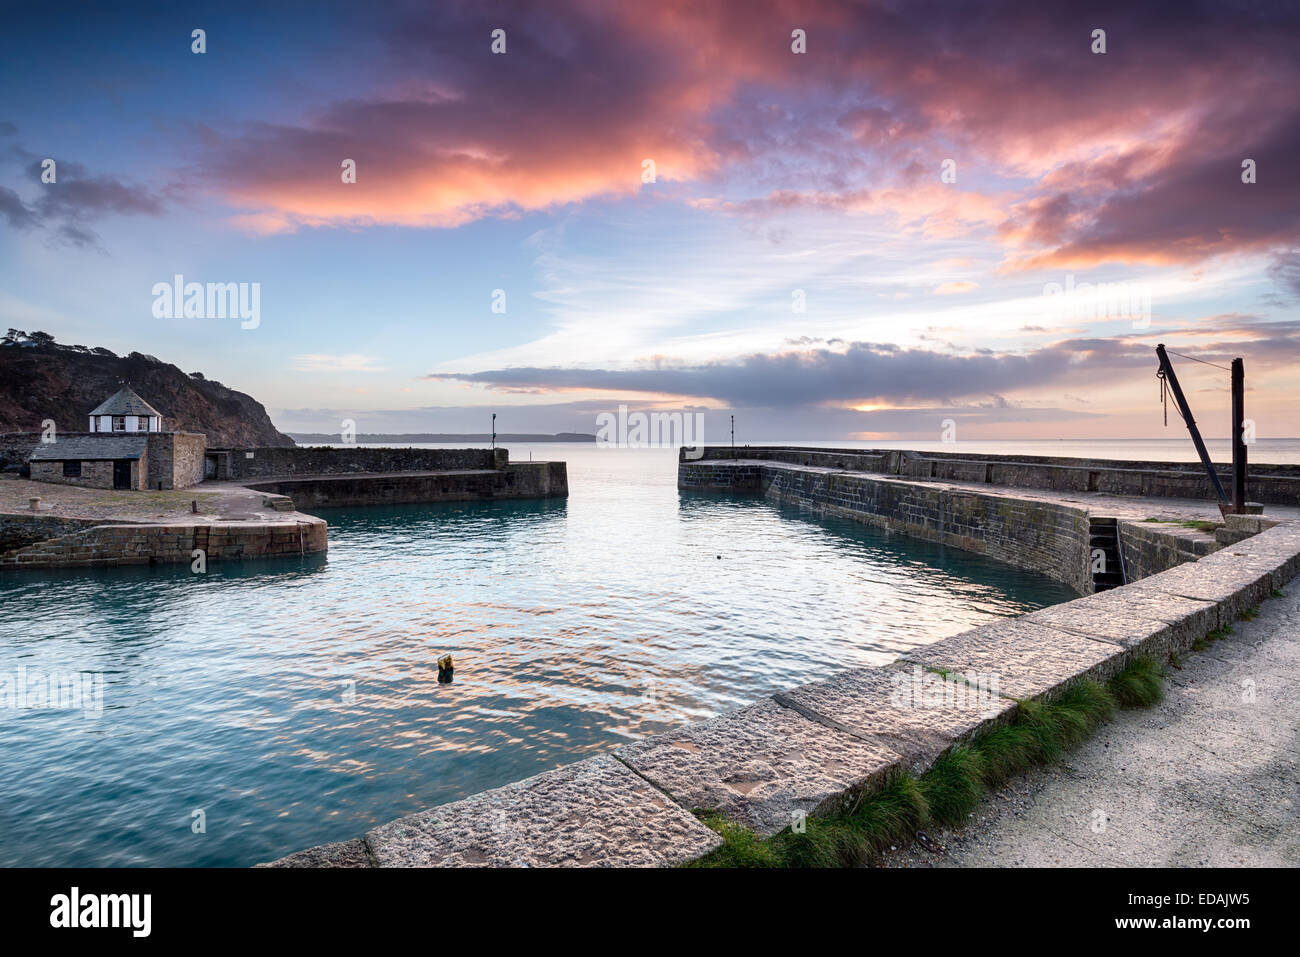 Charlestown harbour in Cornwall - Stock Image